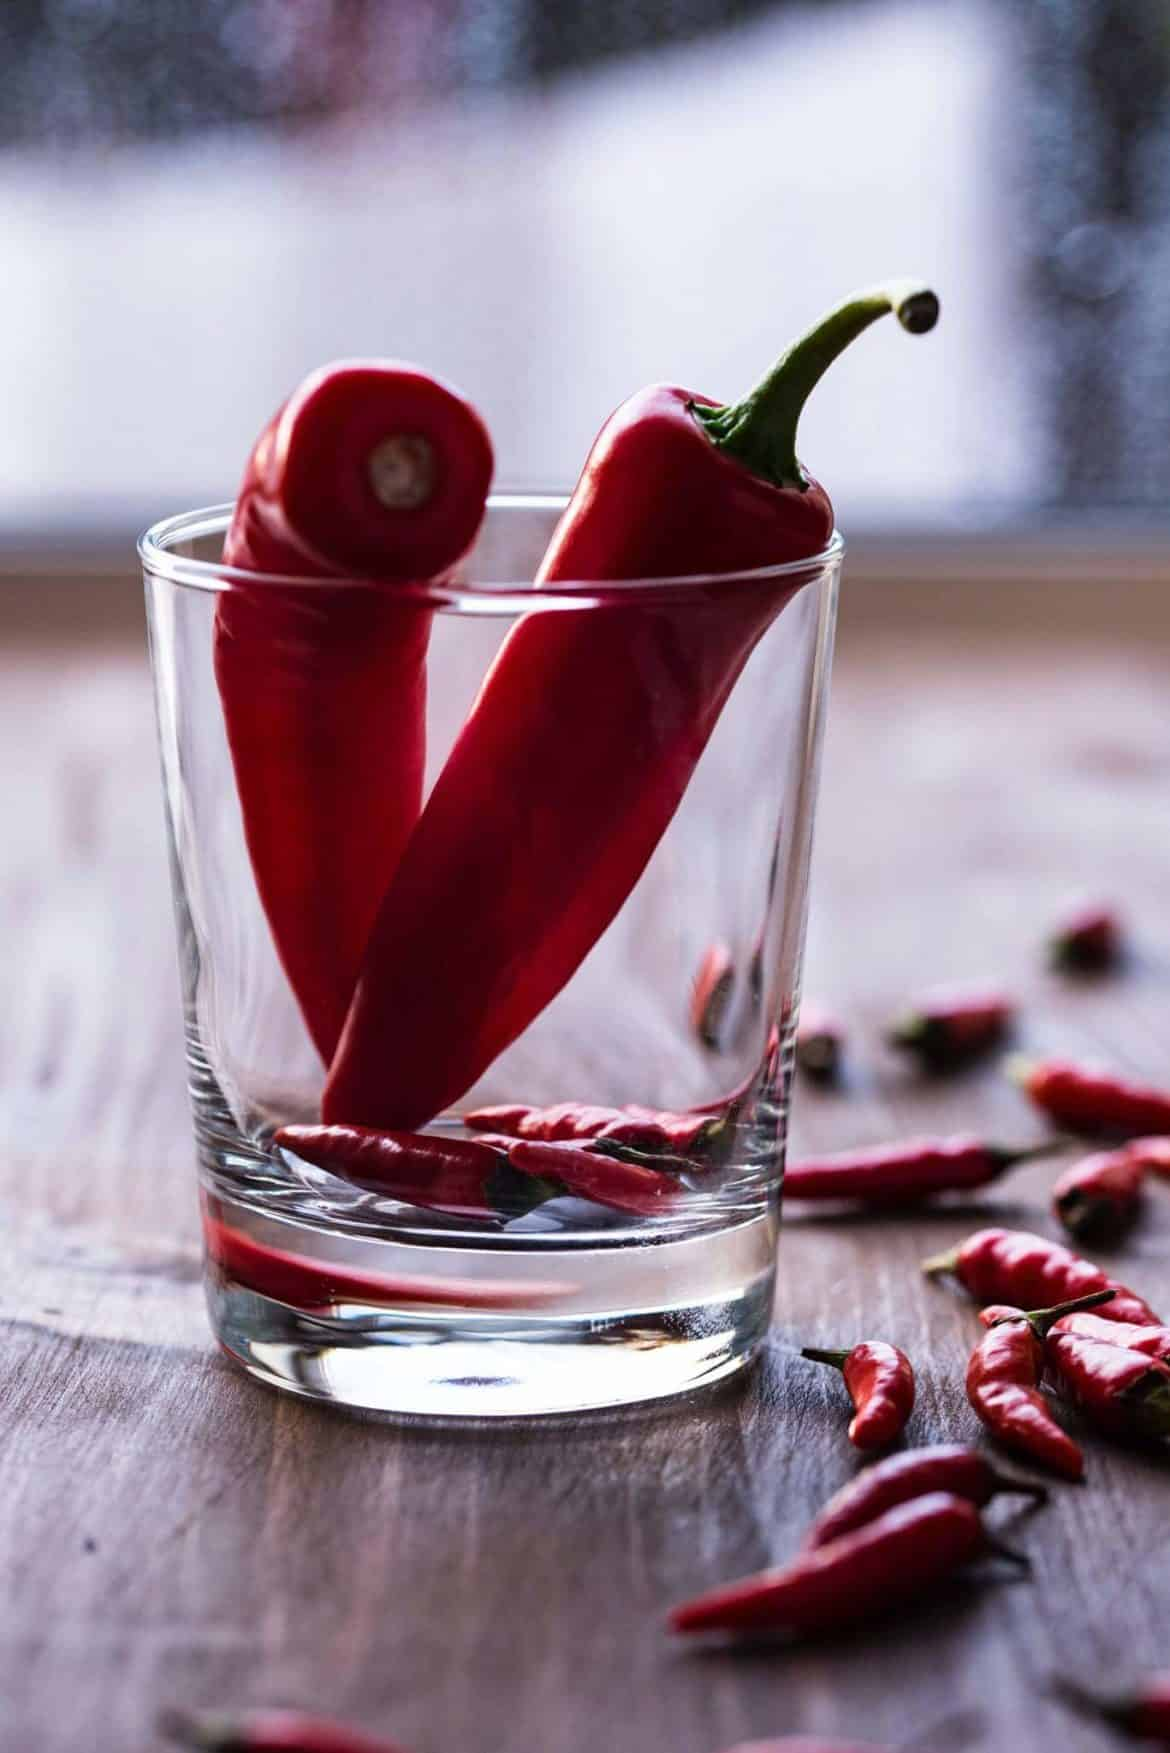 cayenne pepper diet, master cleanse diet for quick weight loss